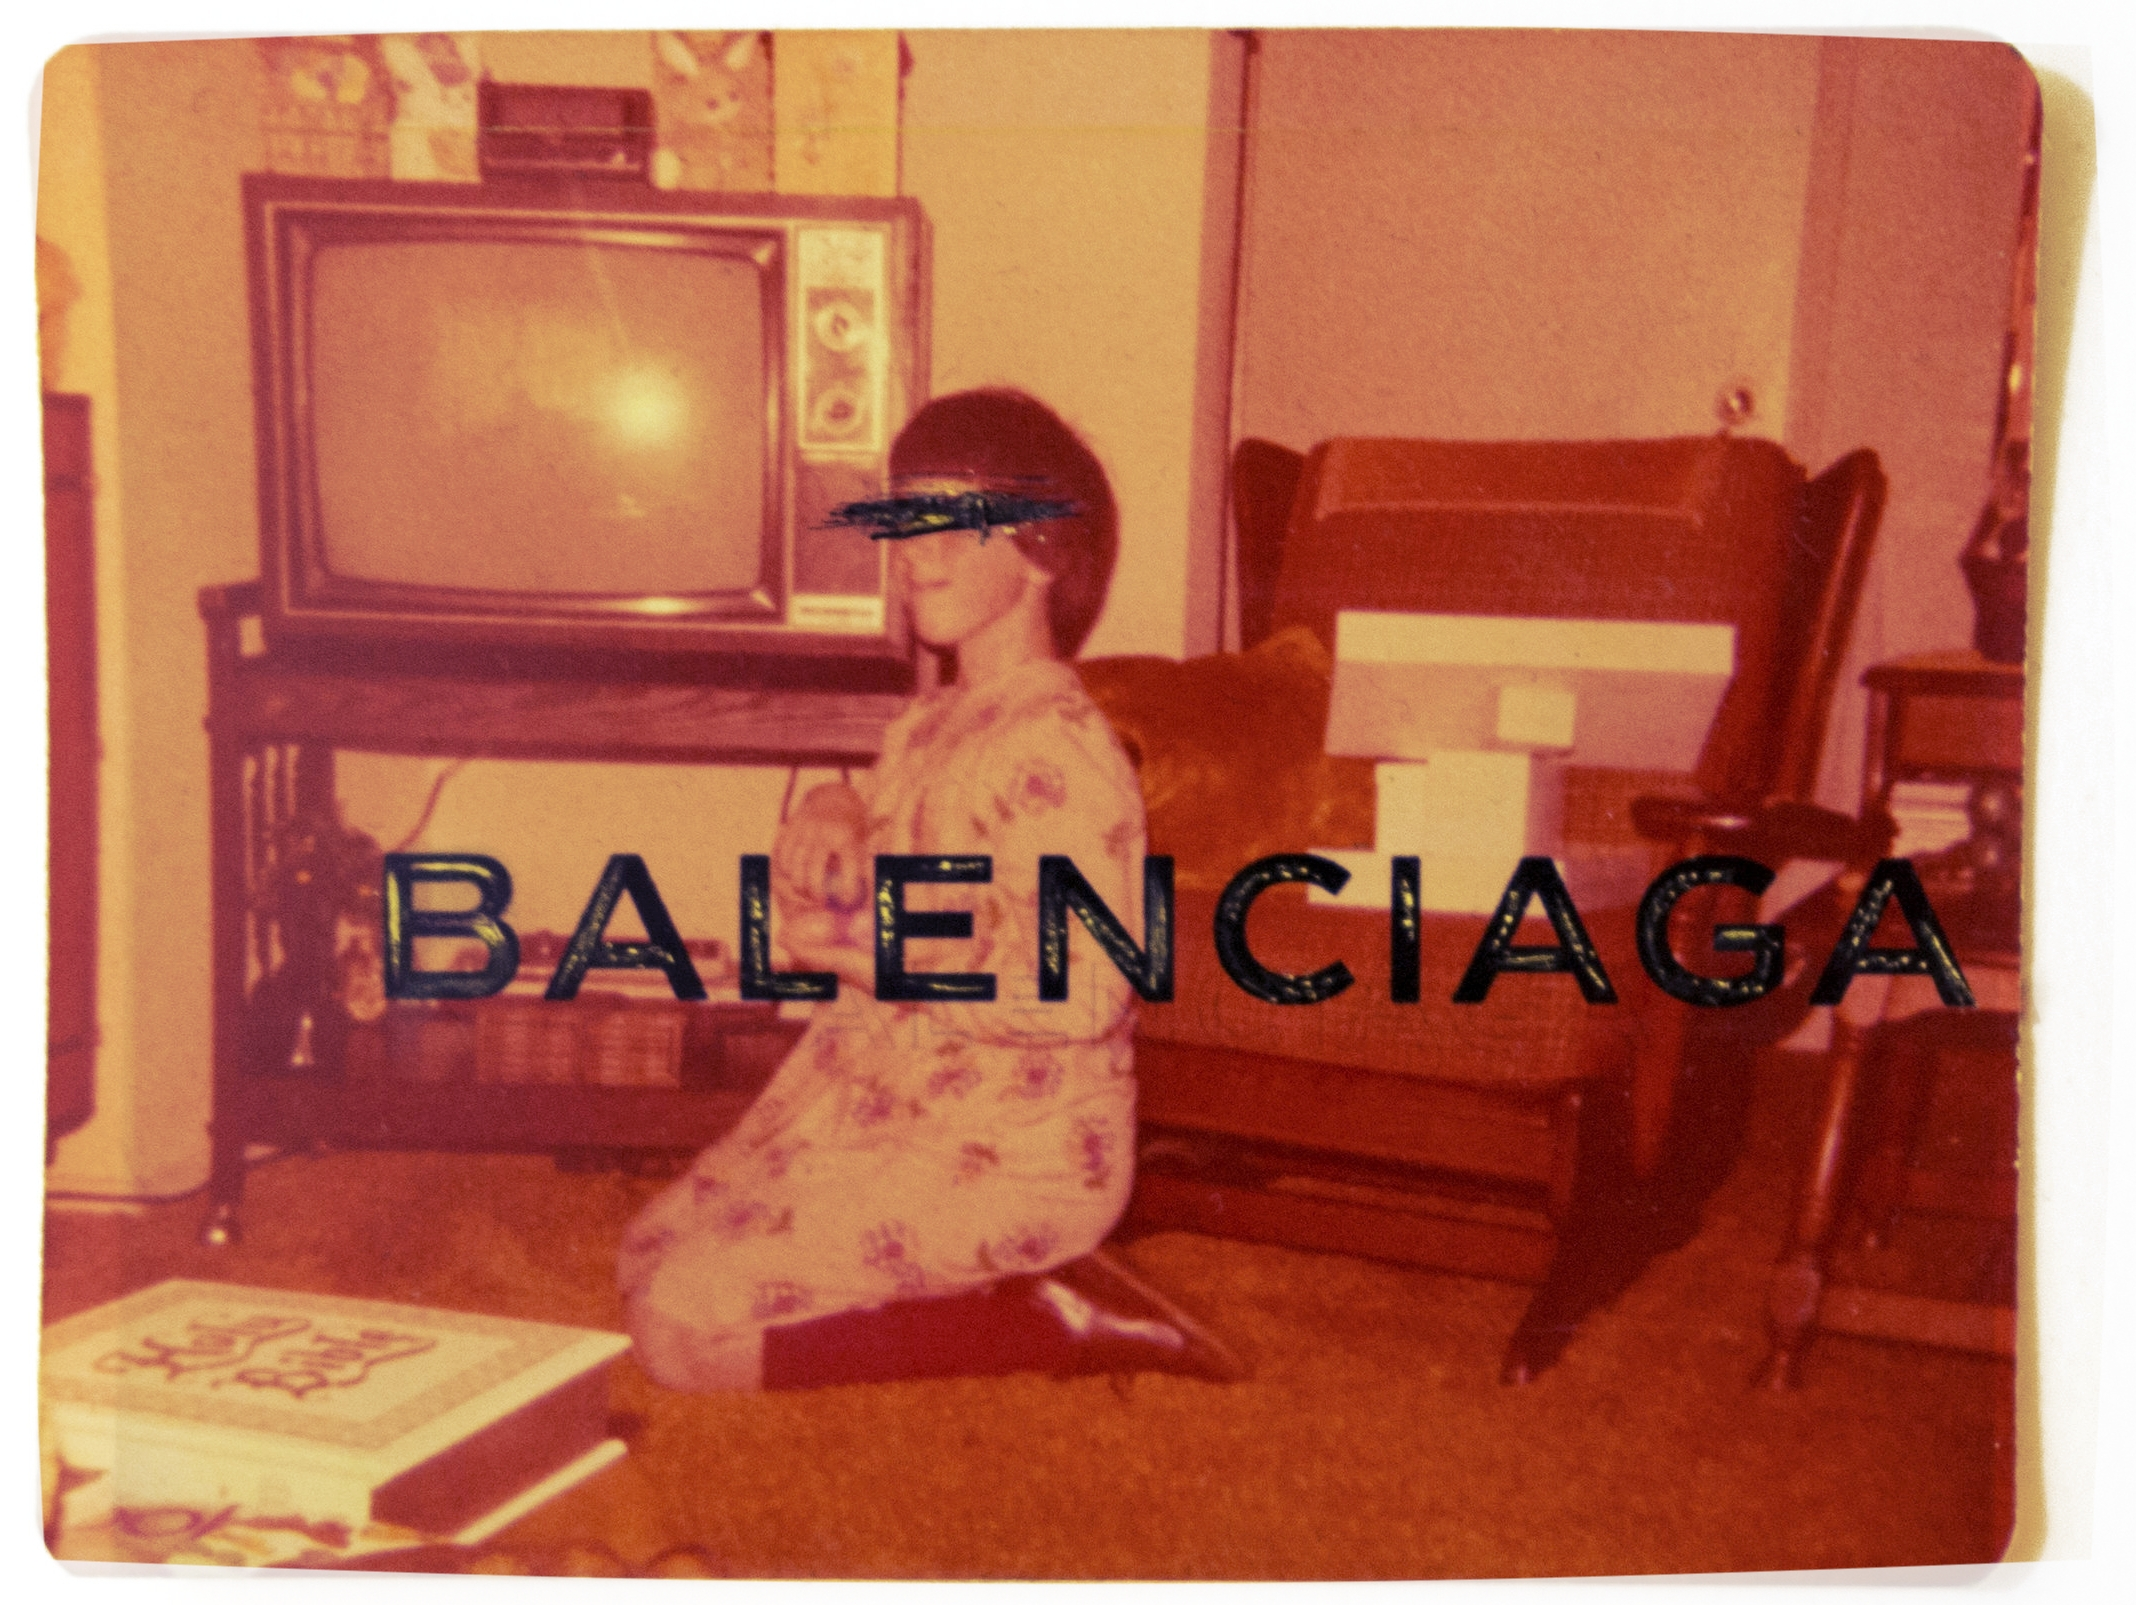 - |CHRISTMAS MORNING: by BALENCIAGA|MASKED MEMORIES    oil + pen + digital media on vintage photograph